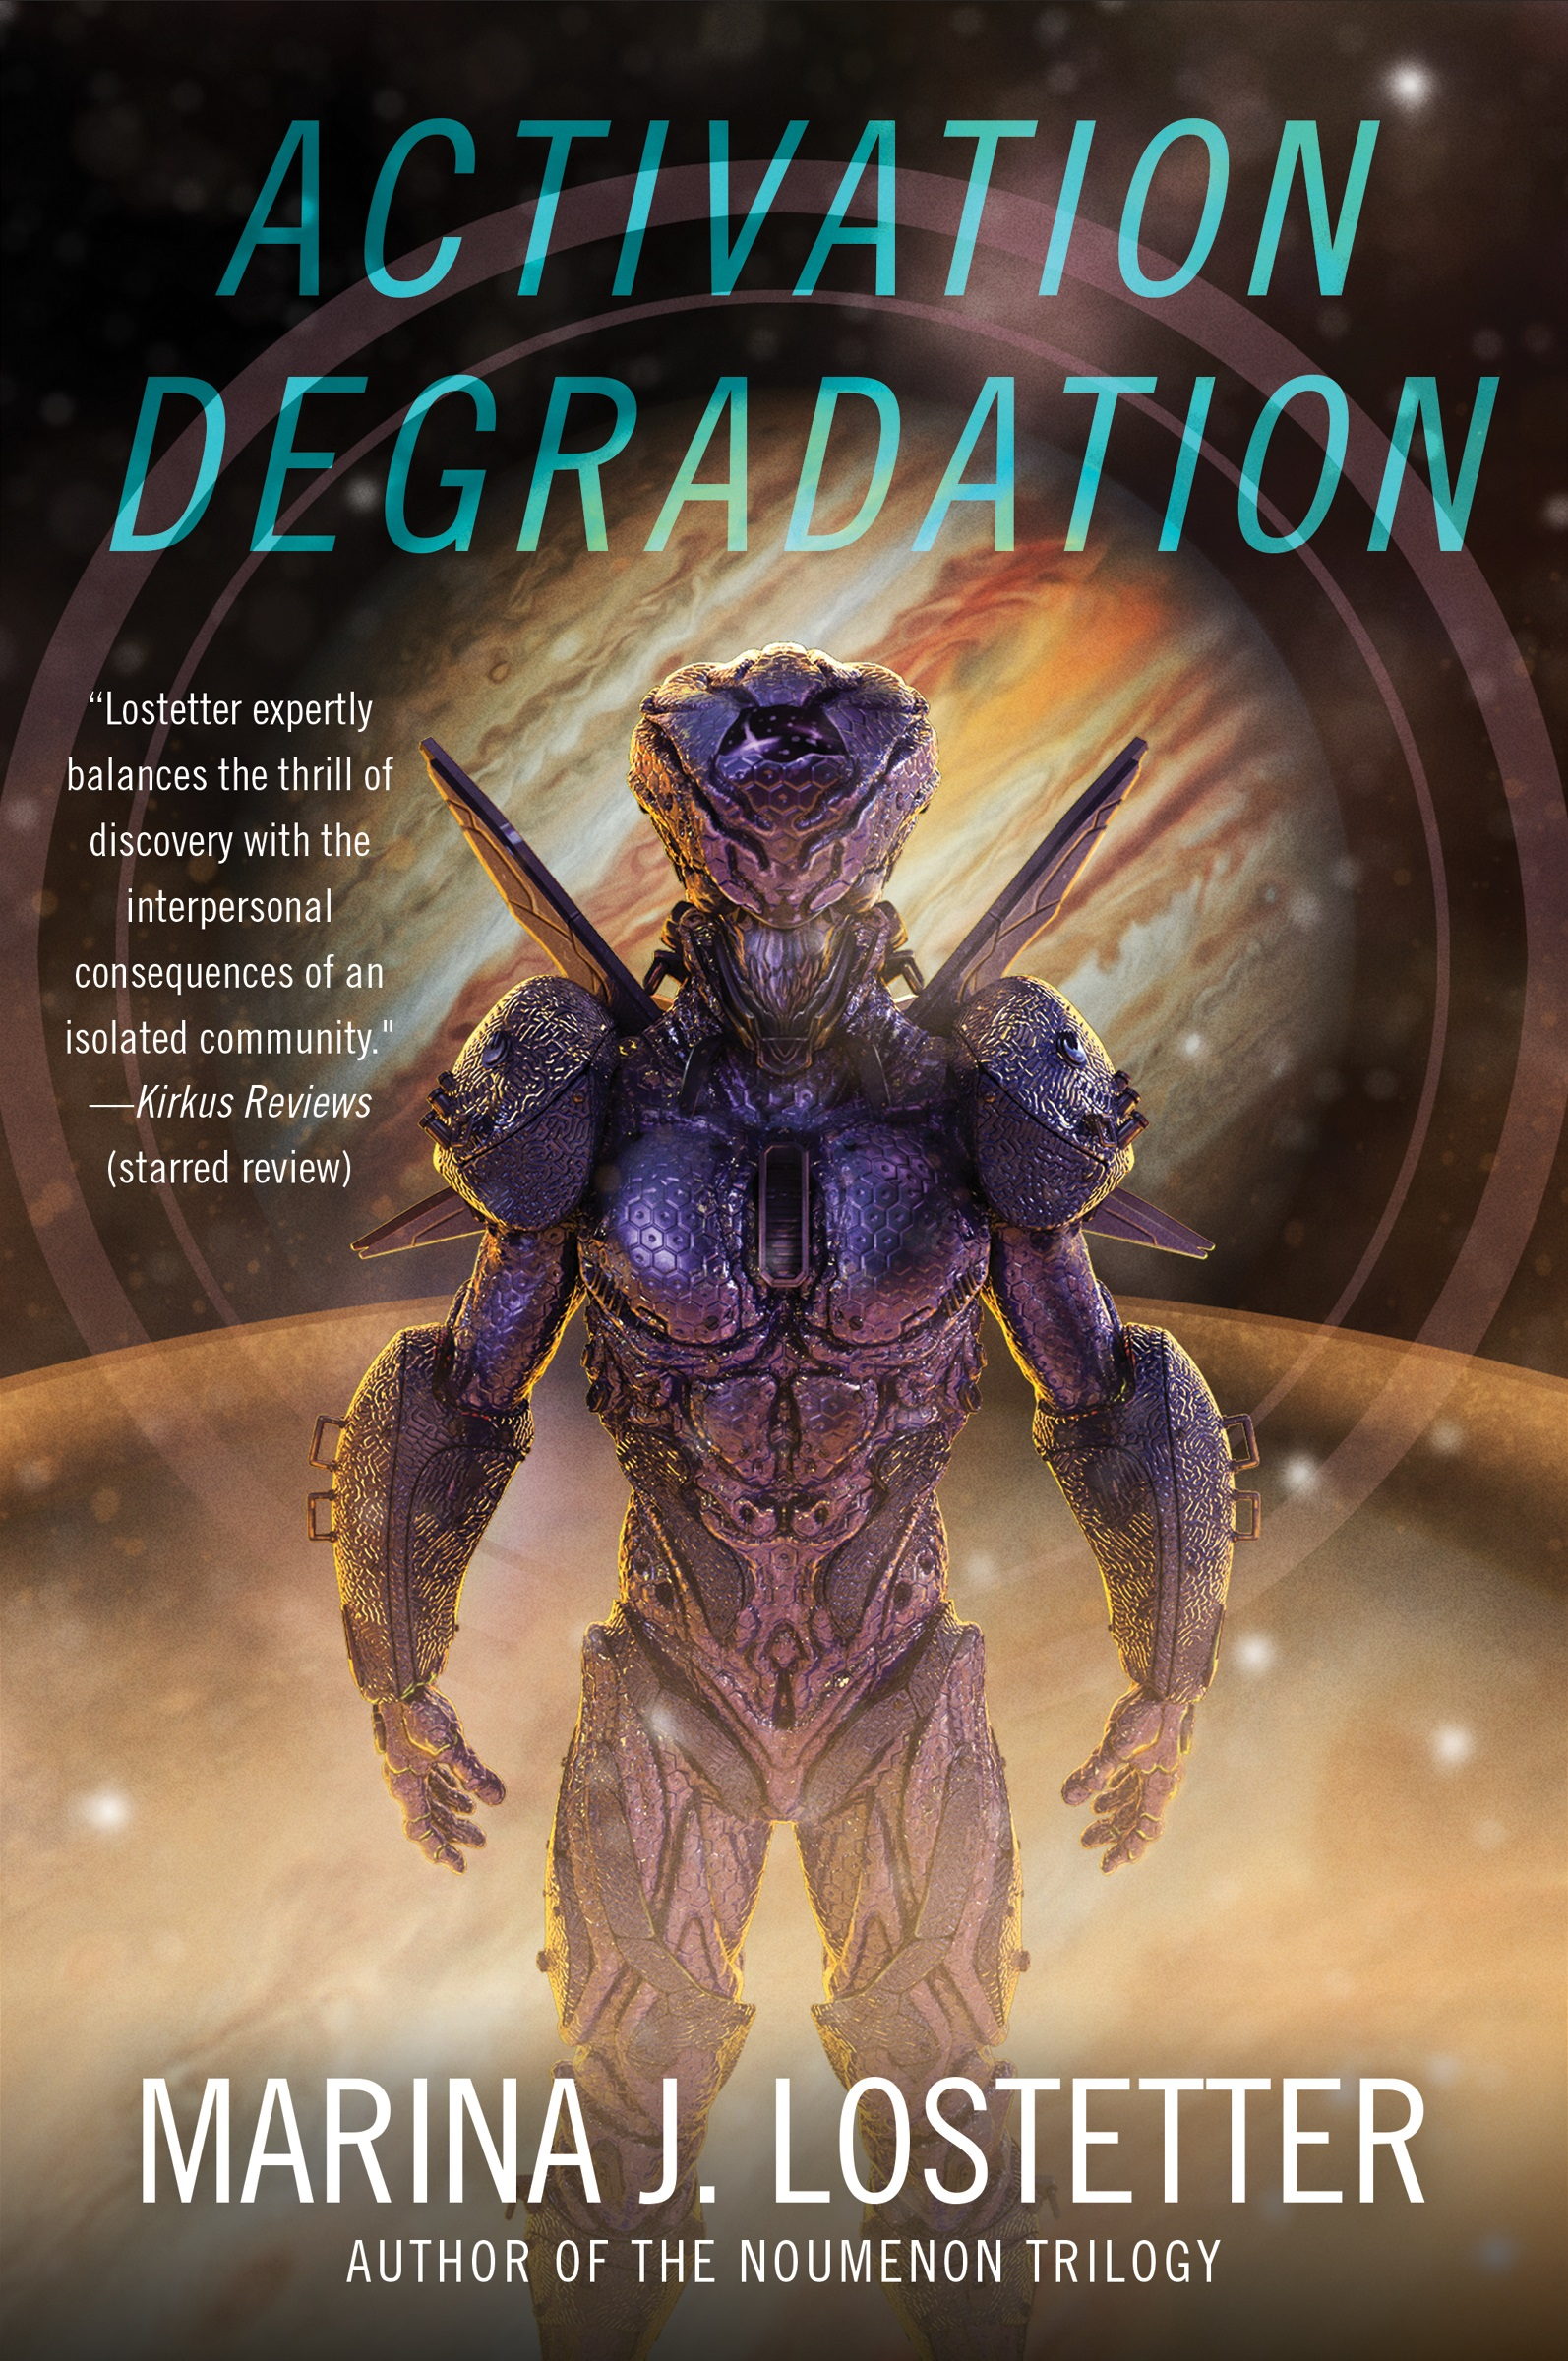 Cover for Marina's upcoming novel, Activation Degradation, releasing Sep 28th